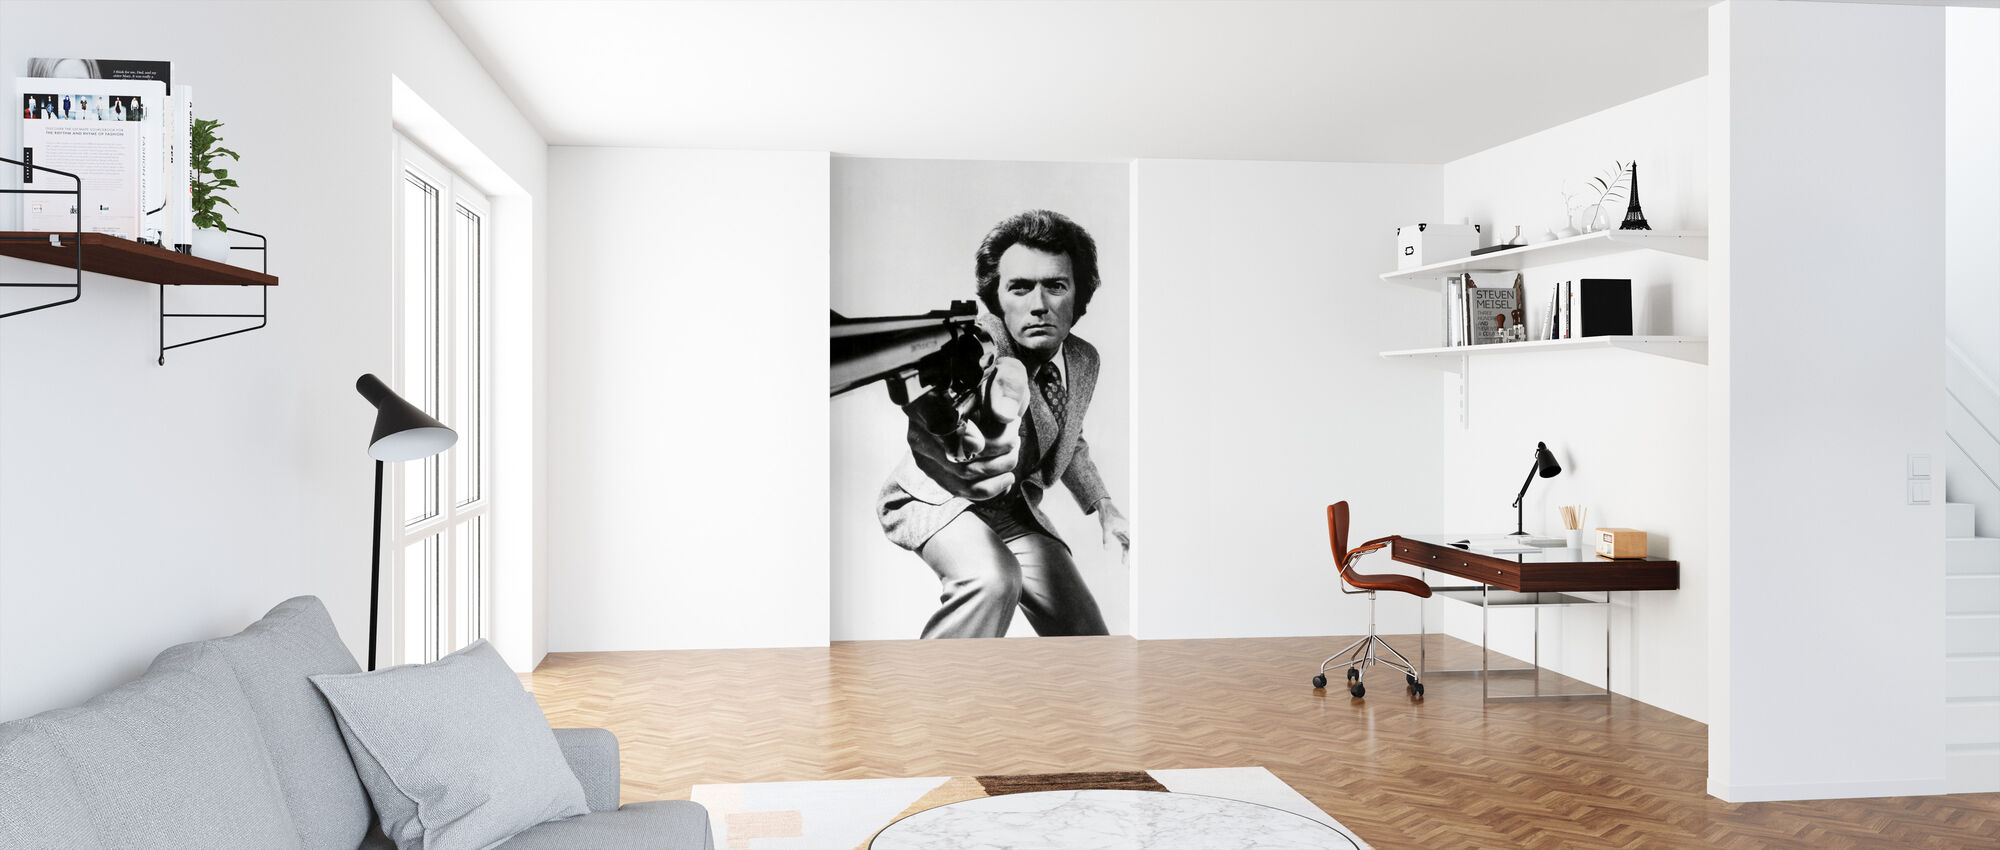 Clint Eastwood in Magnum Force - Wallpaper - Office